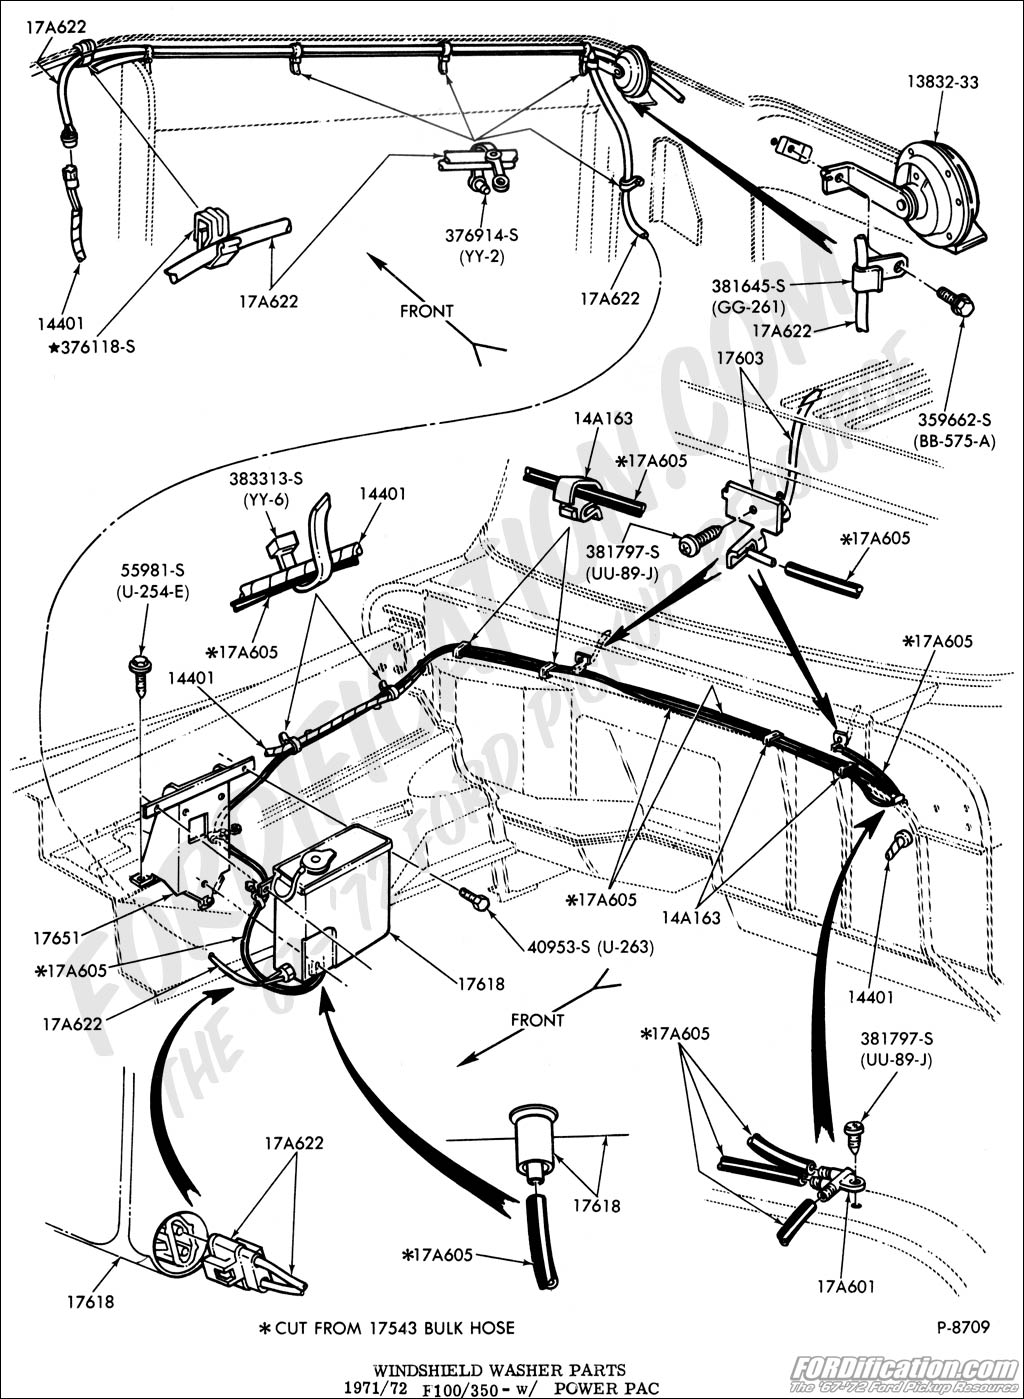 Ford F 250 Wiper Motor Wiring Archive Of Automotive Diagram 66 Mustang Harness Aftermarket Truck Technical Drawings And Schematics Section I Rh Fordification Com